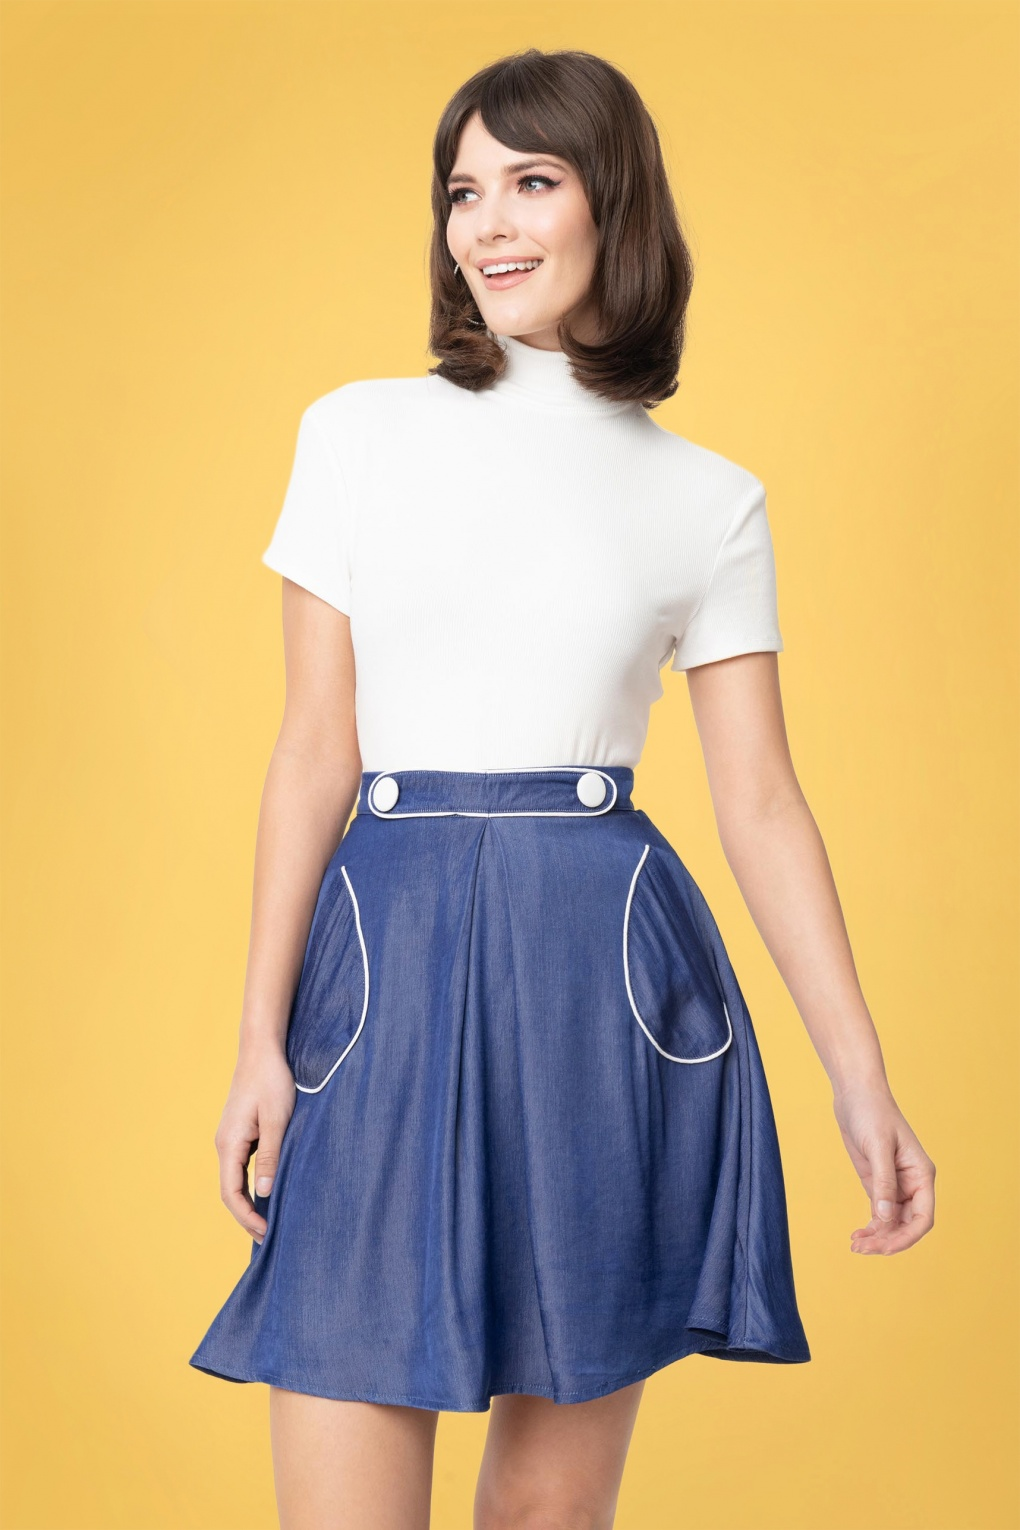 1960s Style Dresses, Clothing, Shoes UK 60s Smak Parlour Chambray Sitting Pretty Skirt in Denim Blue £37.93 AT vintagedancer.com